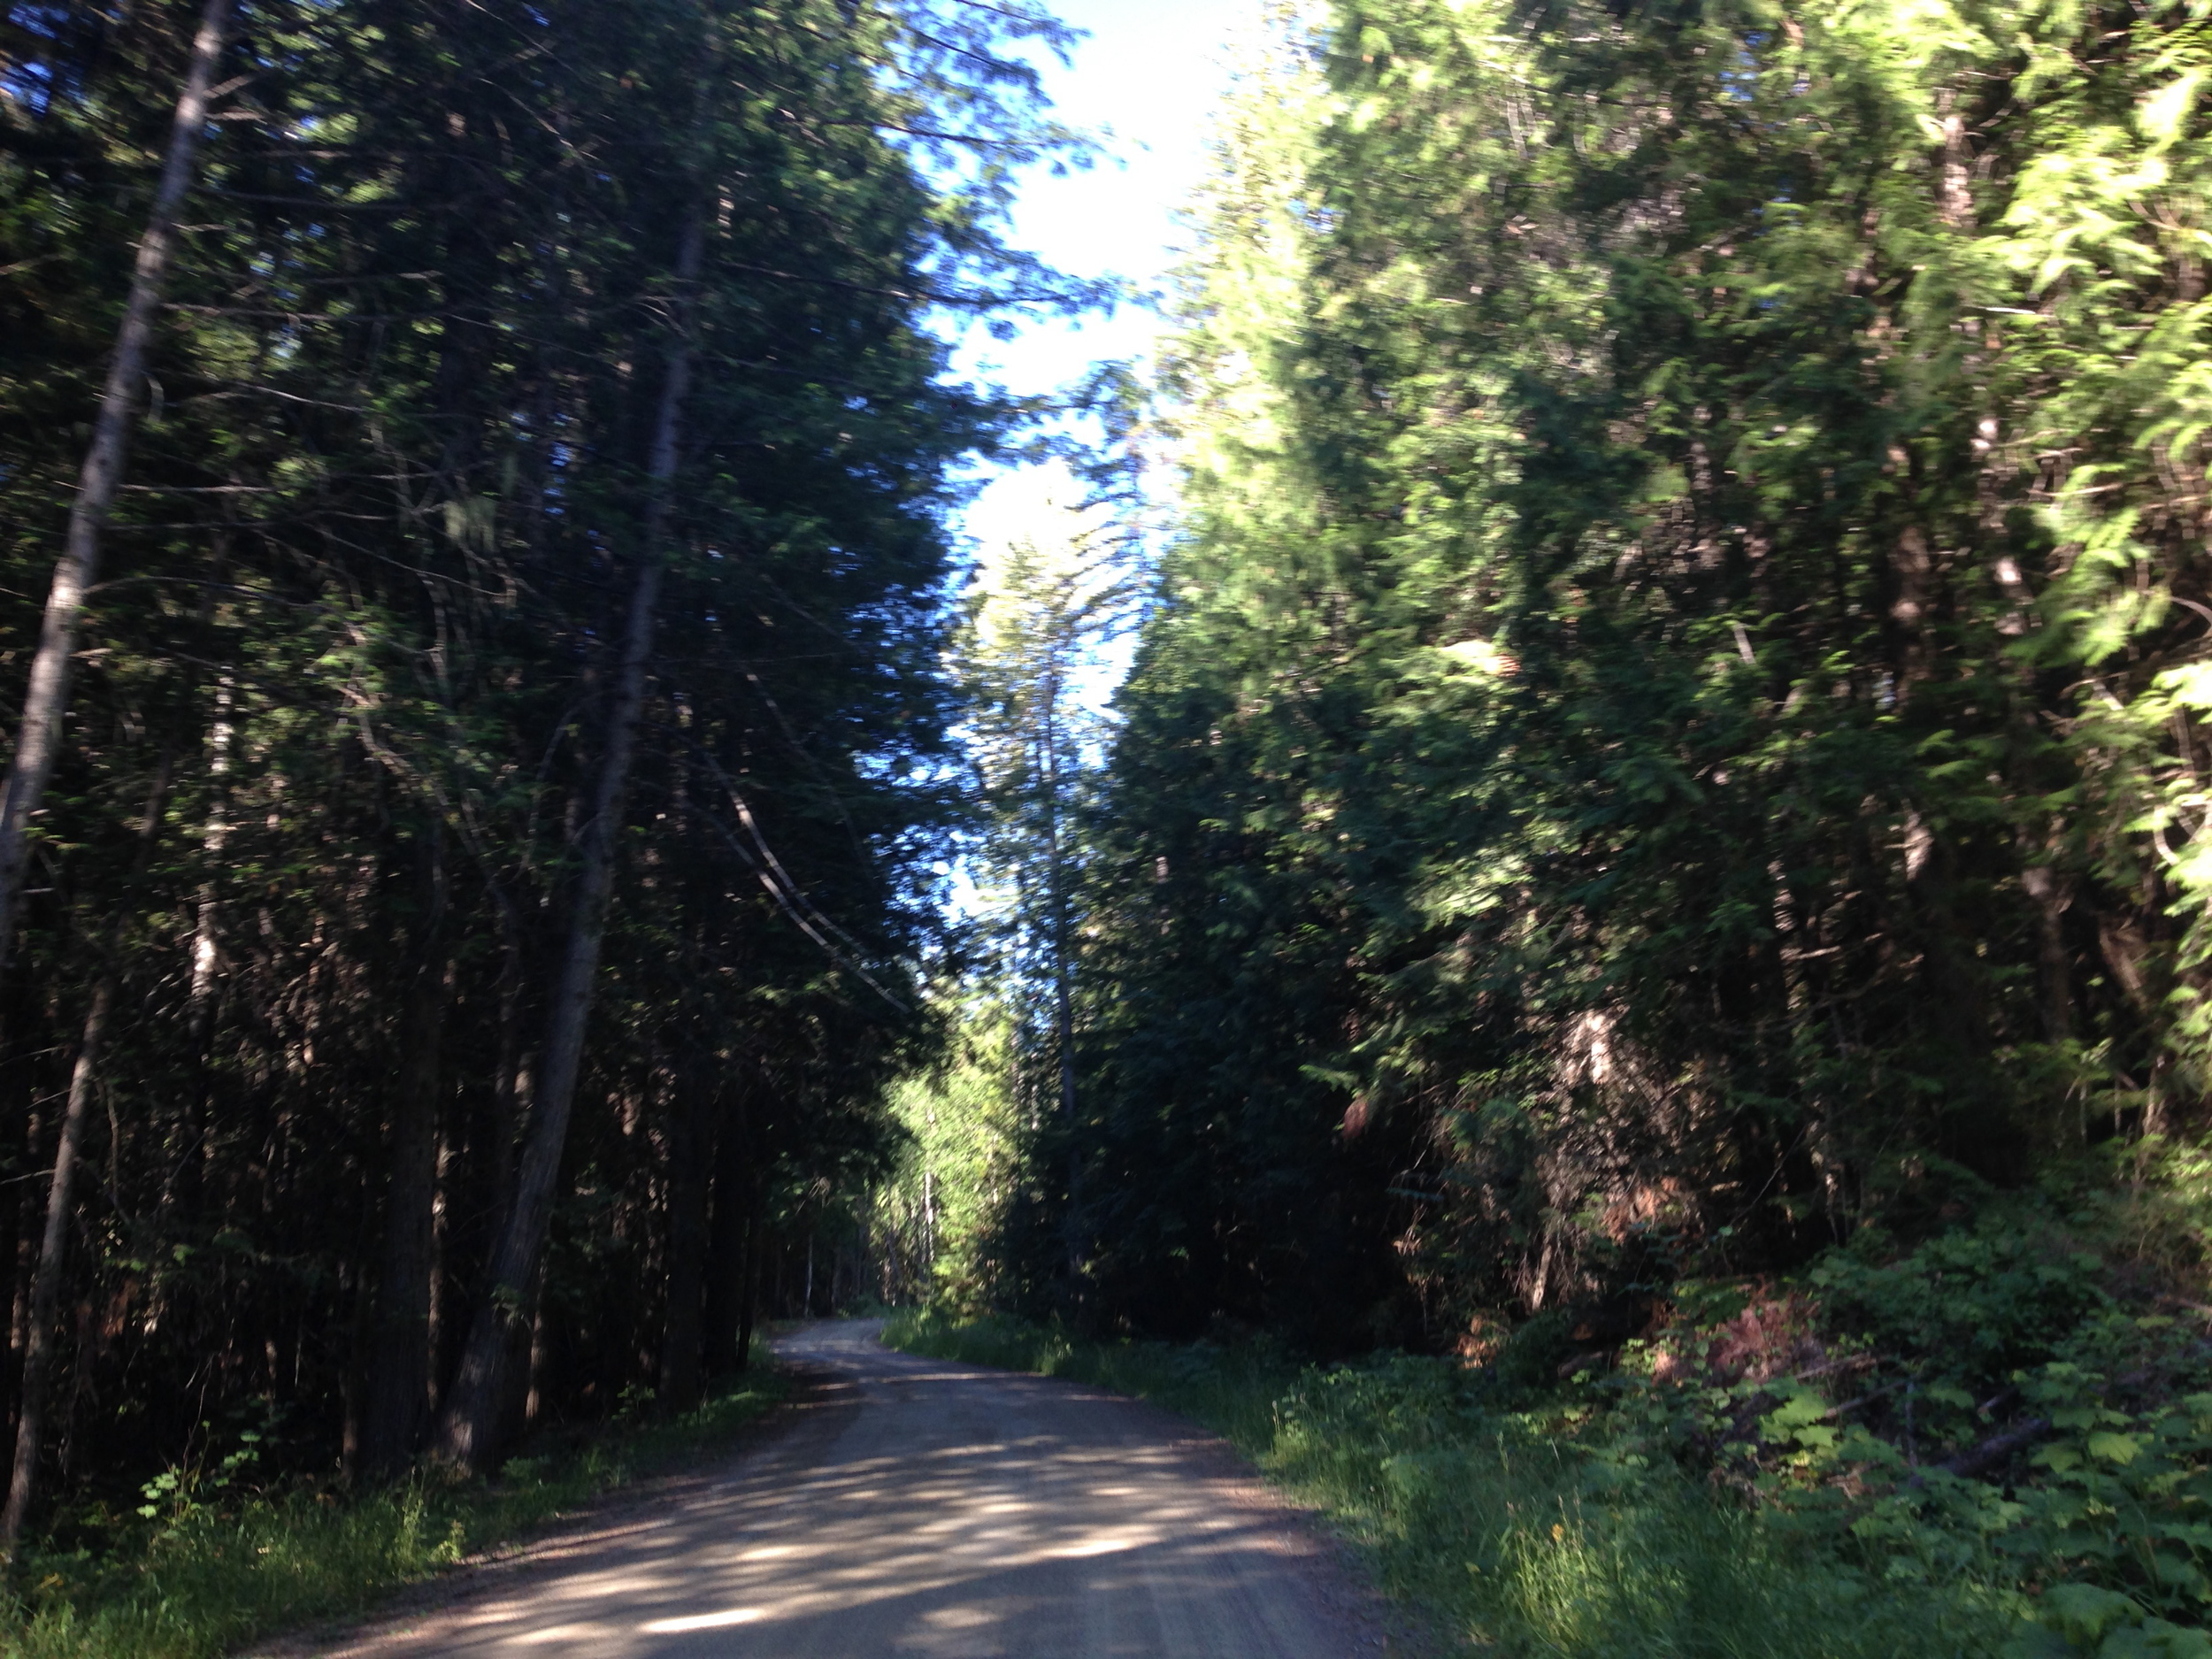 This is the dirt road across from the campground. A beautiful place for morning walks or runs!